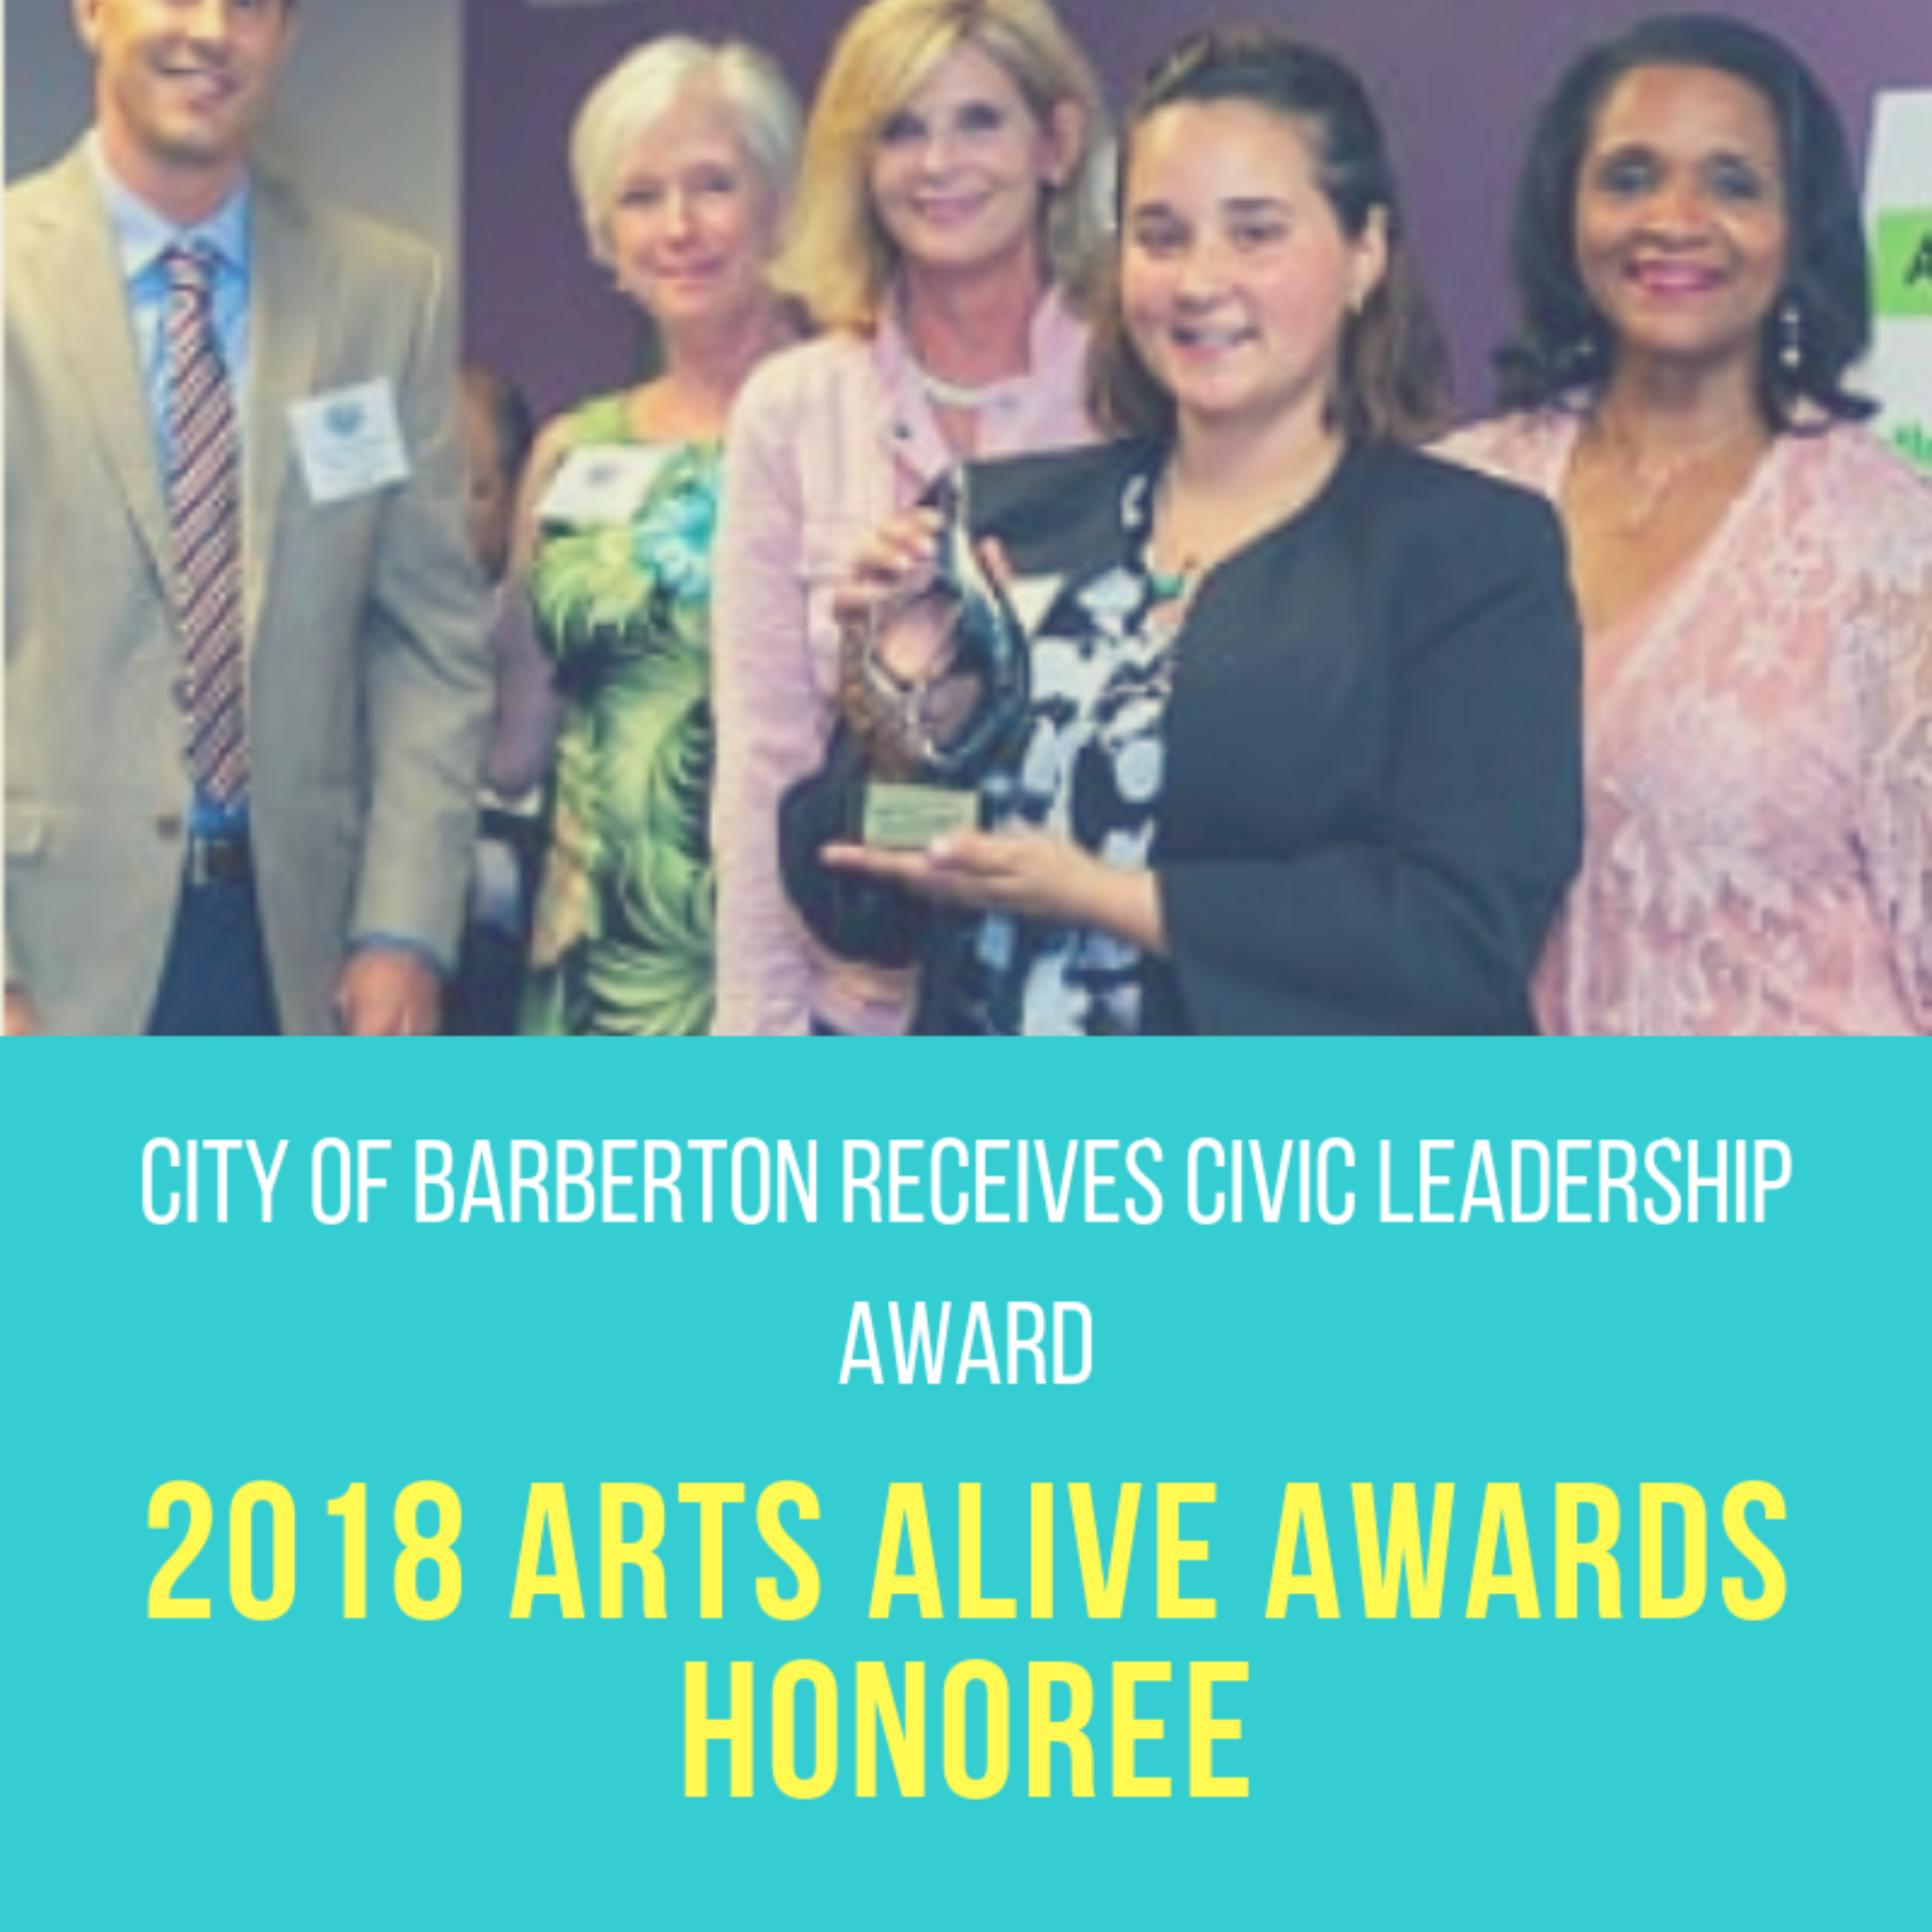 2018 ARTS ALIVE AWARDS HONOREE